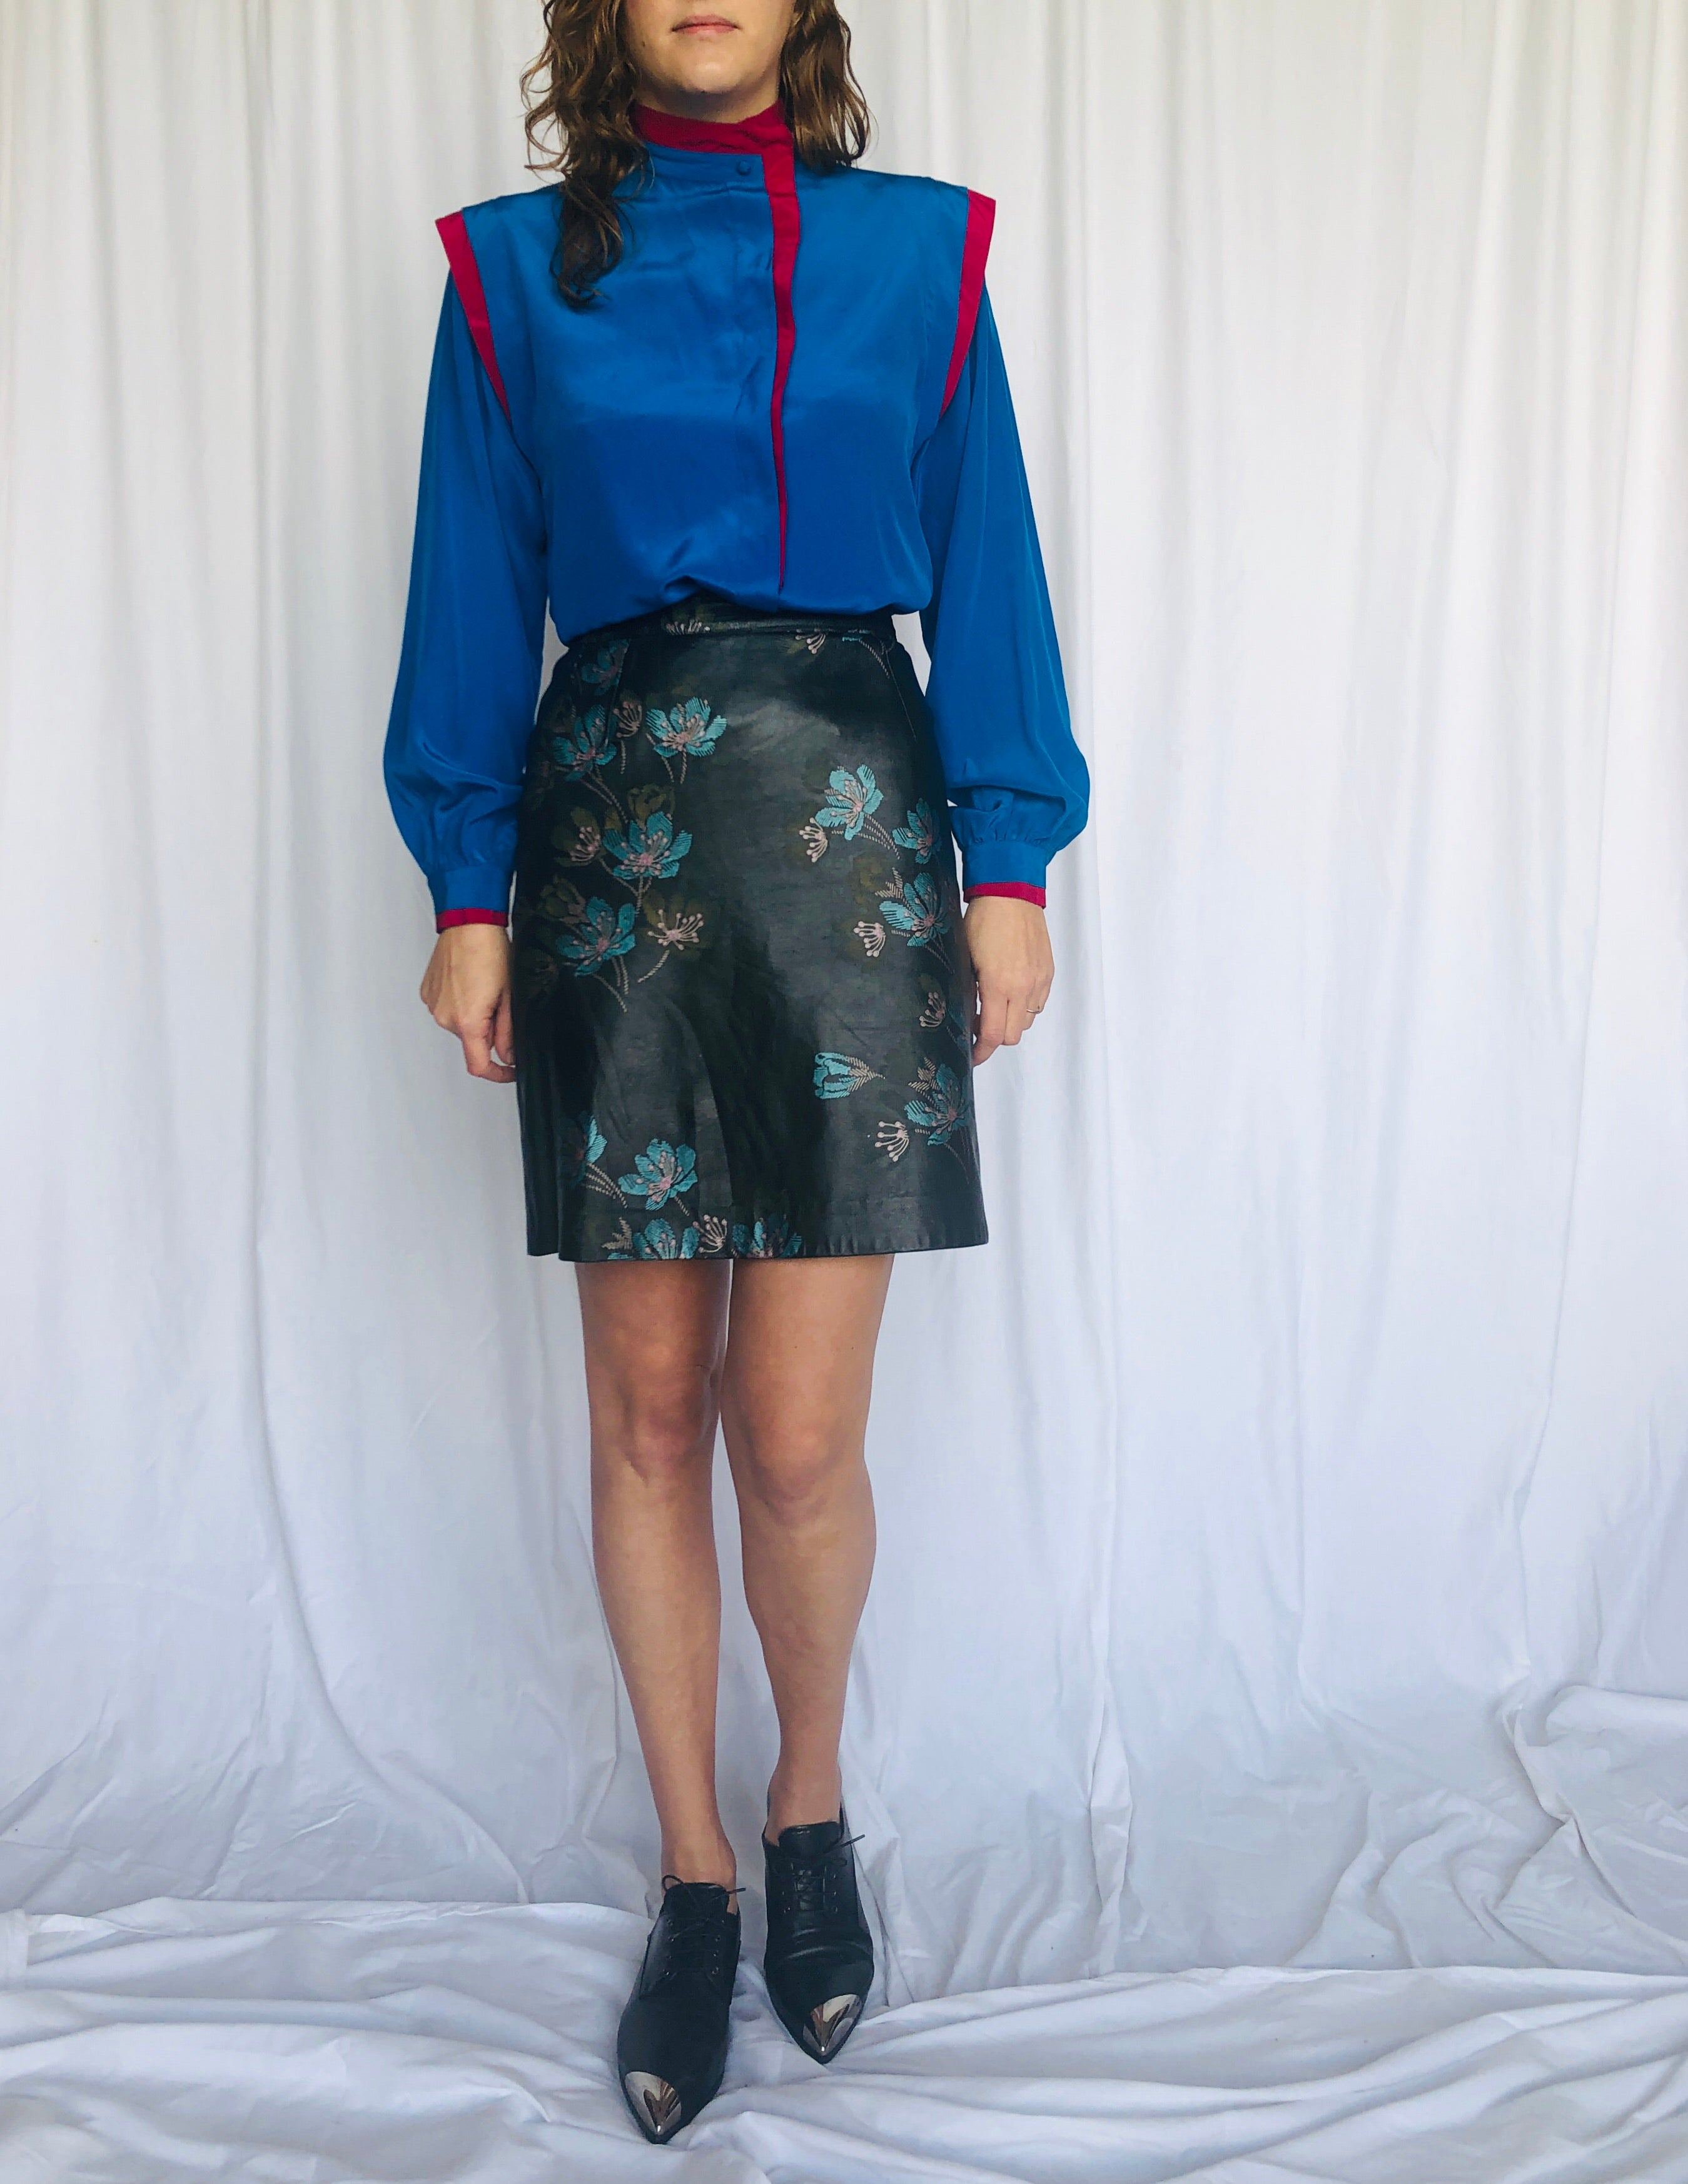 Vintage Hand Painted Leather Skirt Floral XS S